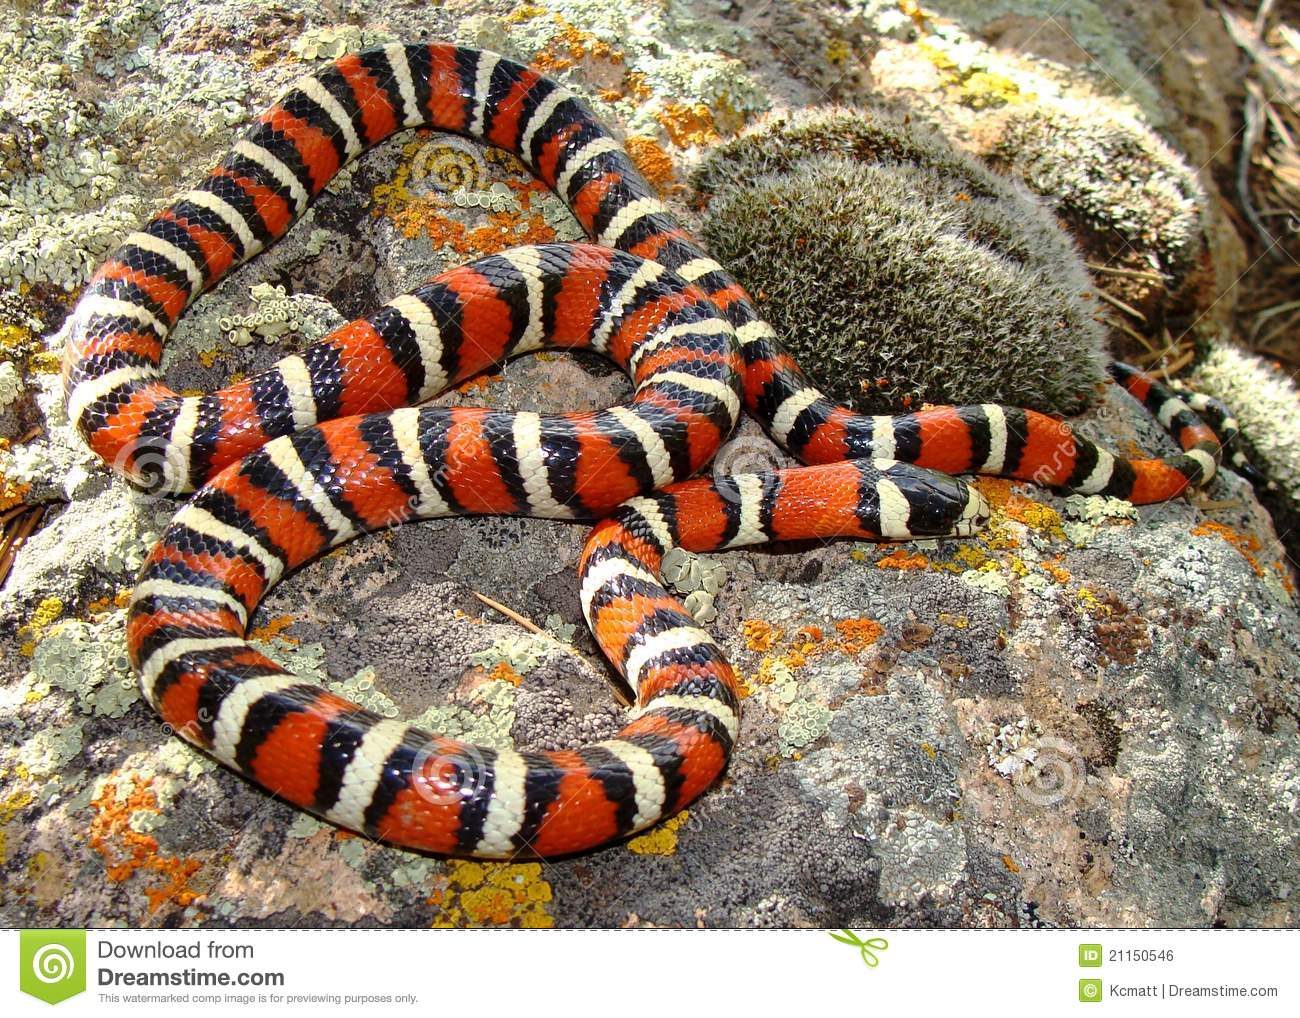 Utah Mountain Kingsnake (King Snake)